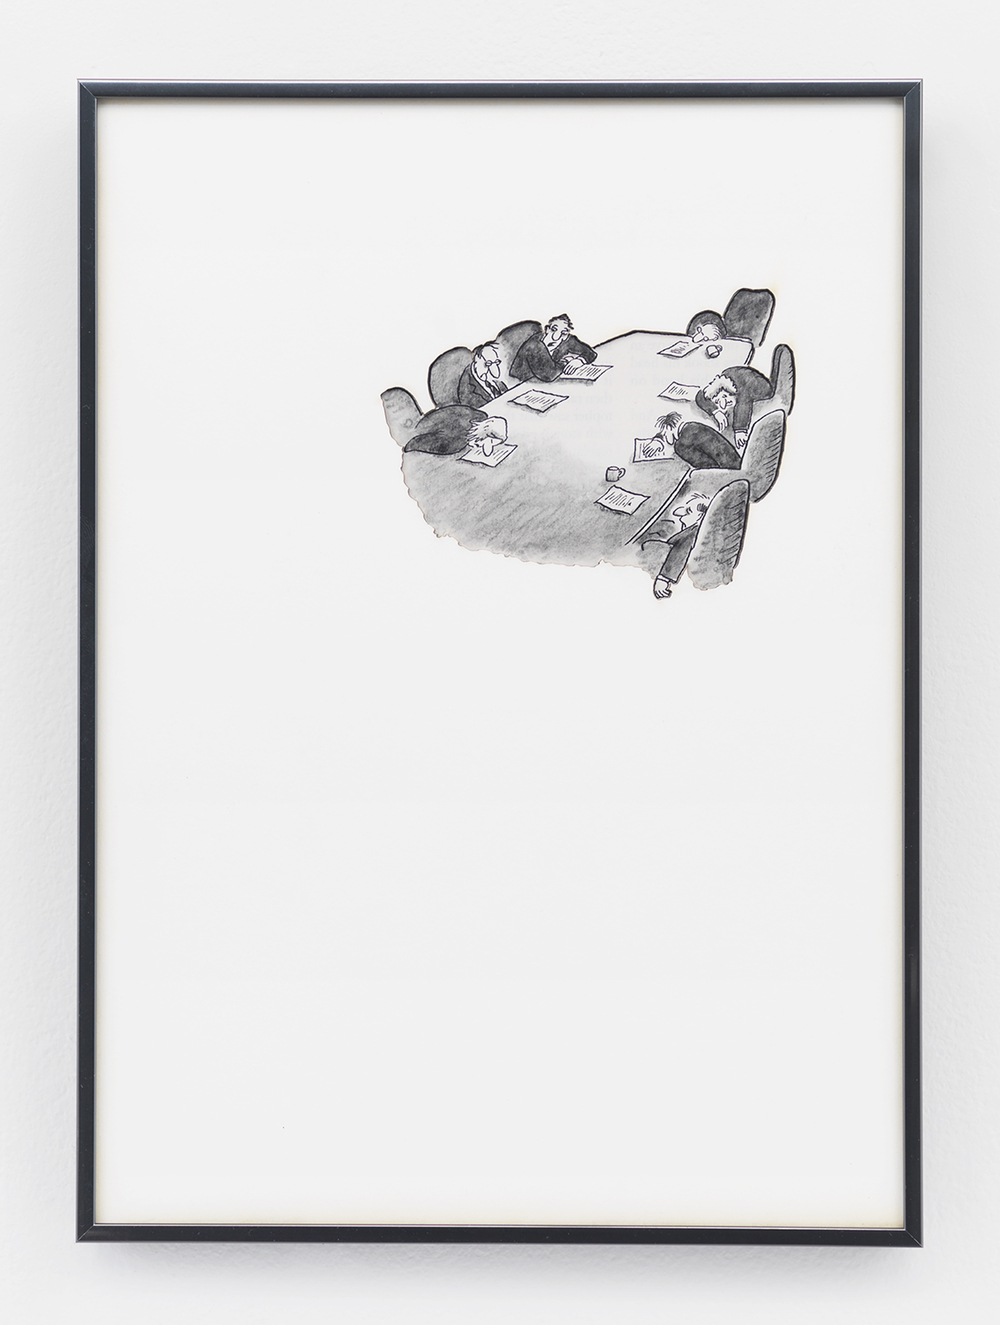 Artifact: Language Barrier (Francesco Brunery), 2014 Cotton and paper in artist frame 11 x 8 inches